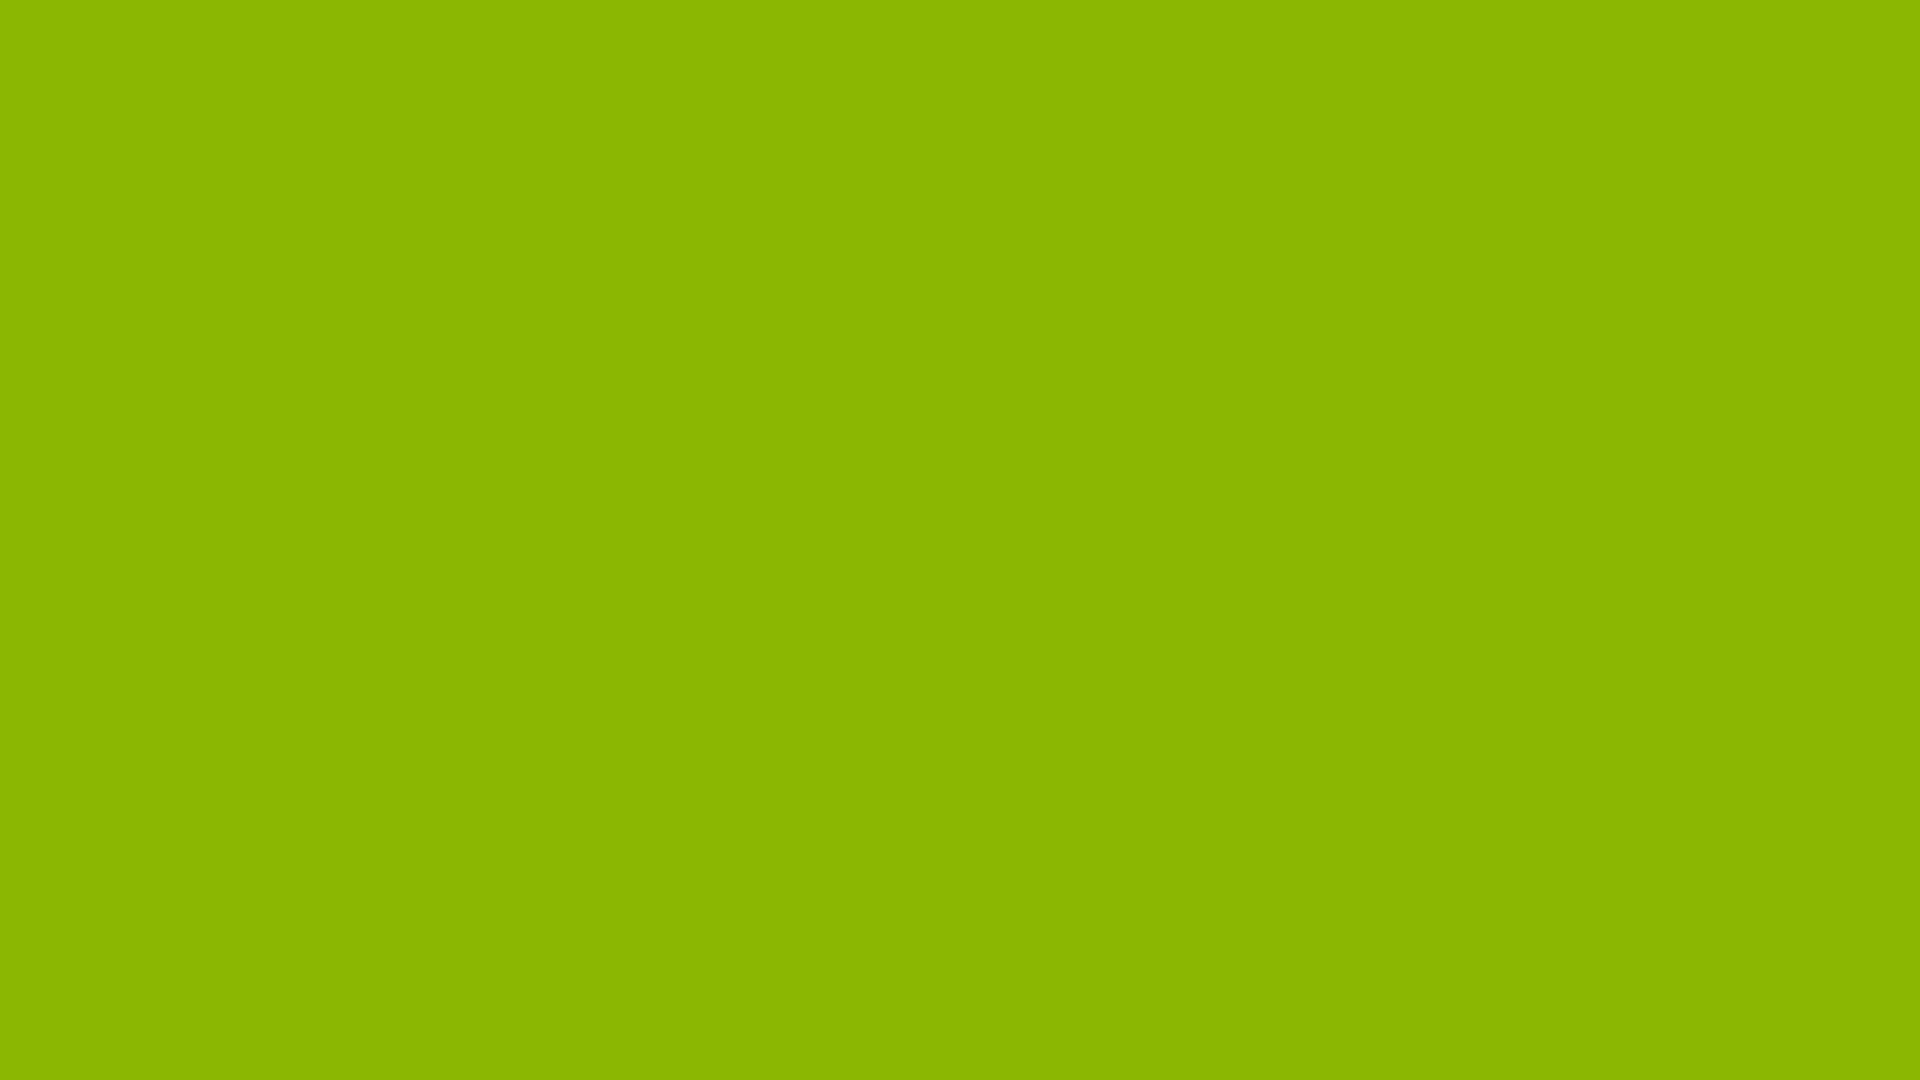 1920x1080 Apple Green Solid Color Background